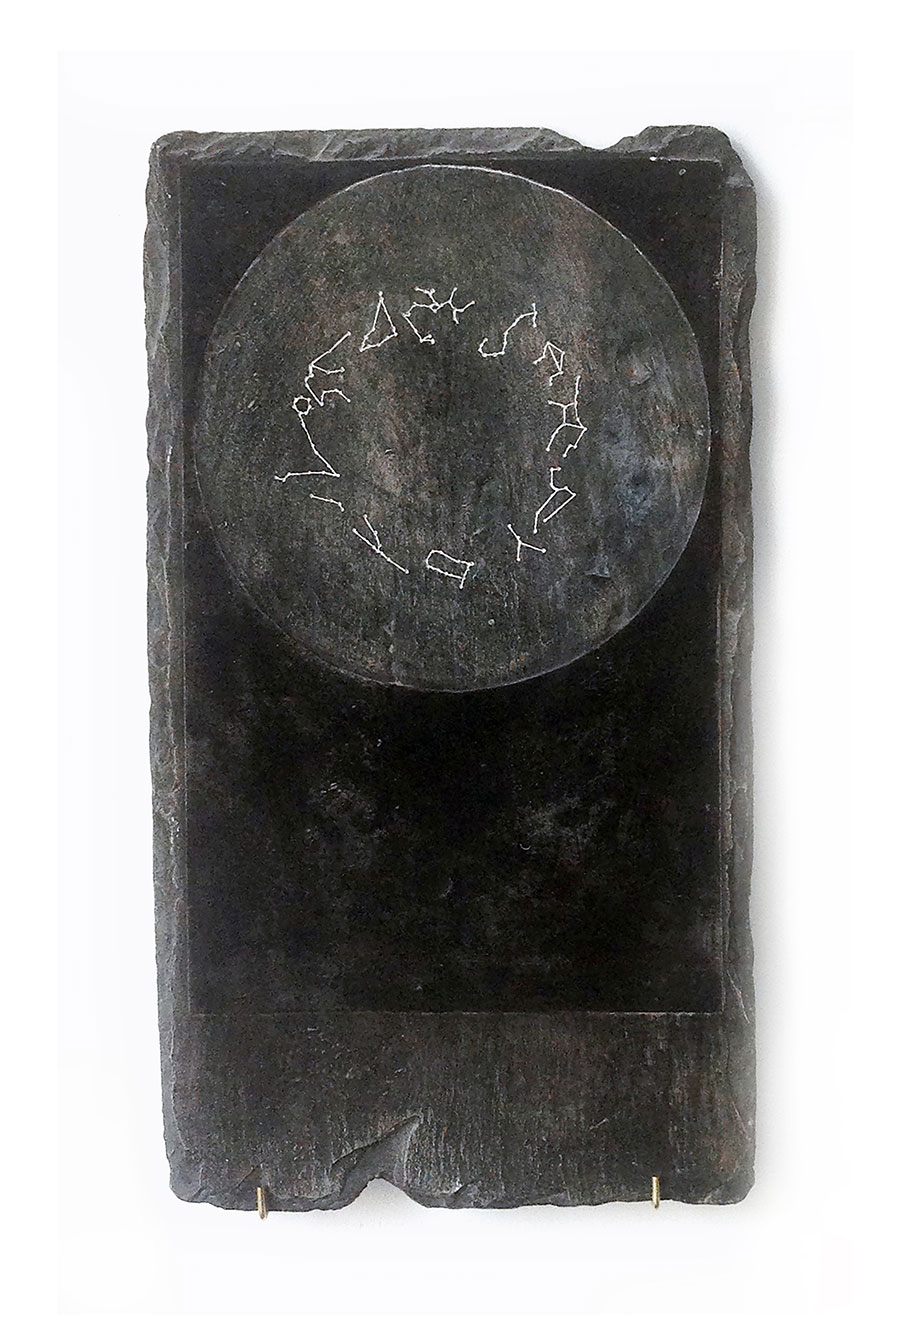 <b>Title: </b>Zodiac (I)<br /><b>Year: </b>2016<br /><b>Medium: </b>Plaster, graphite, oil and metal fixings<br /><b>Size: </b>41 x 23 x 1 cm